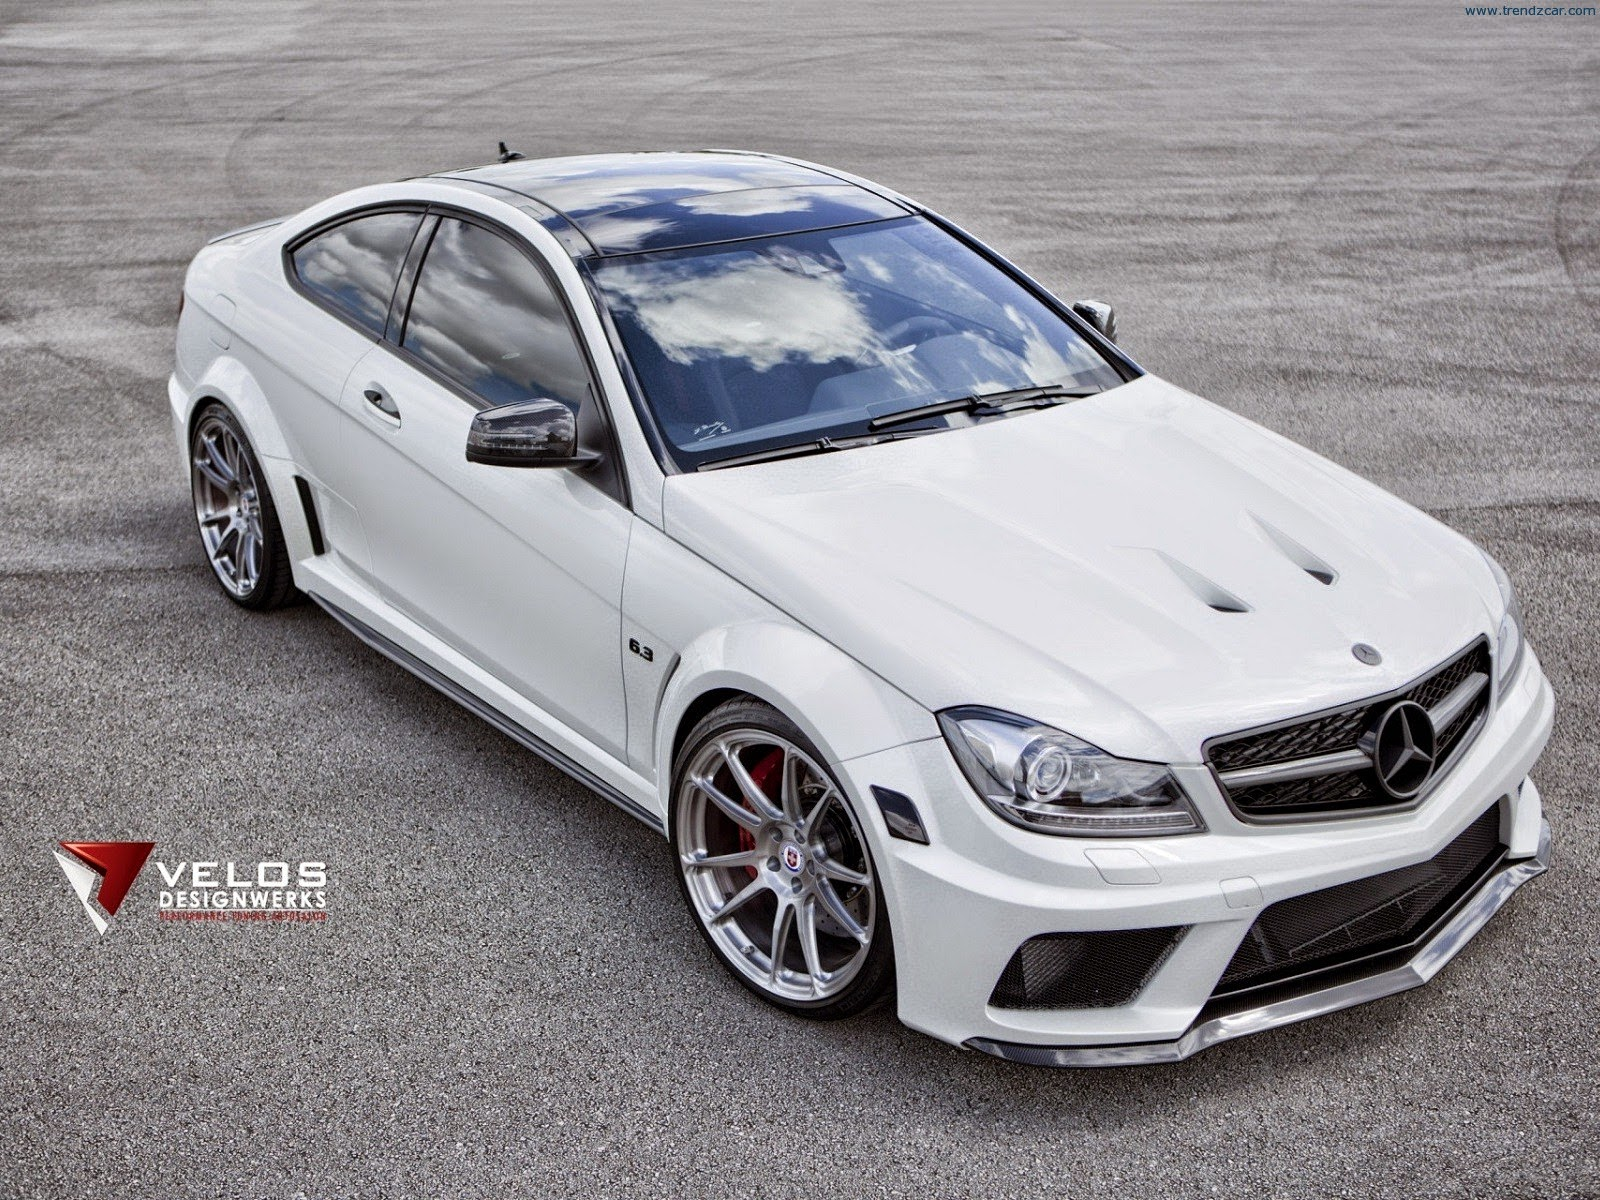 Mercedes benz c63 amg black series by velos designwerks for Mercedes benz amg c63 coupe